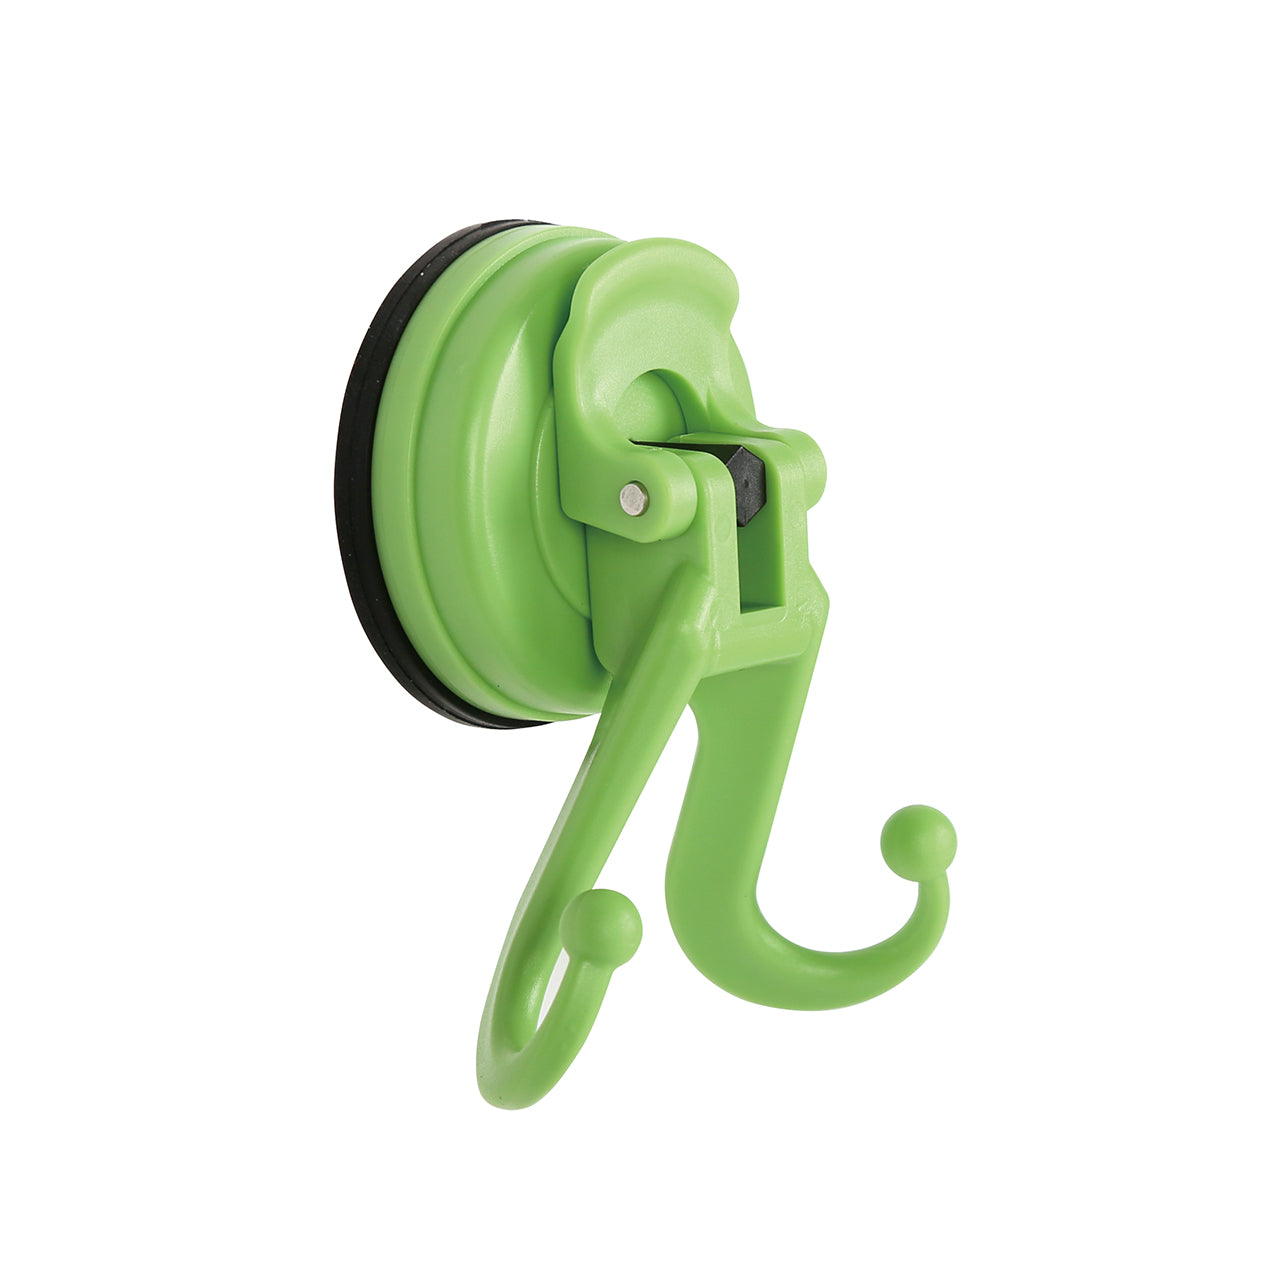 D27 DIANA 2 HOOKS SUCTION CUP [Colour: Green]